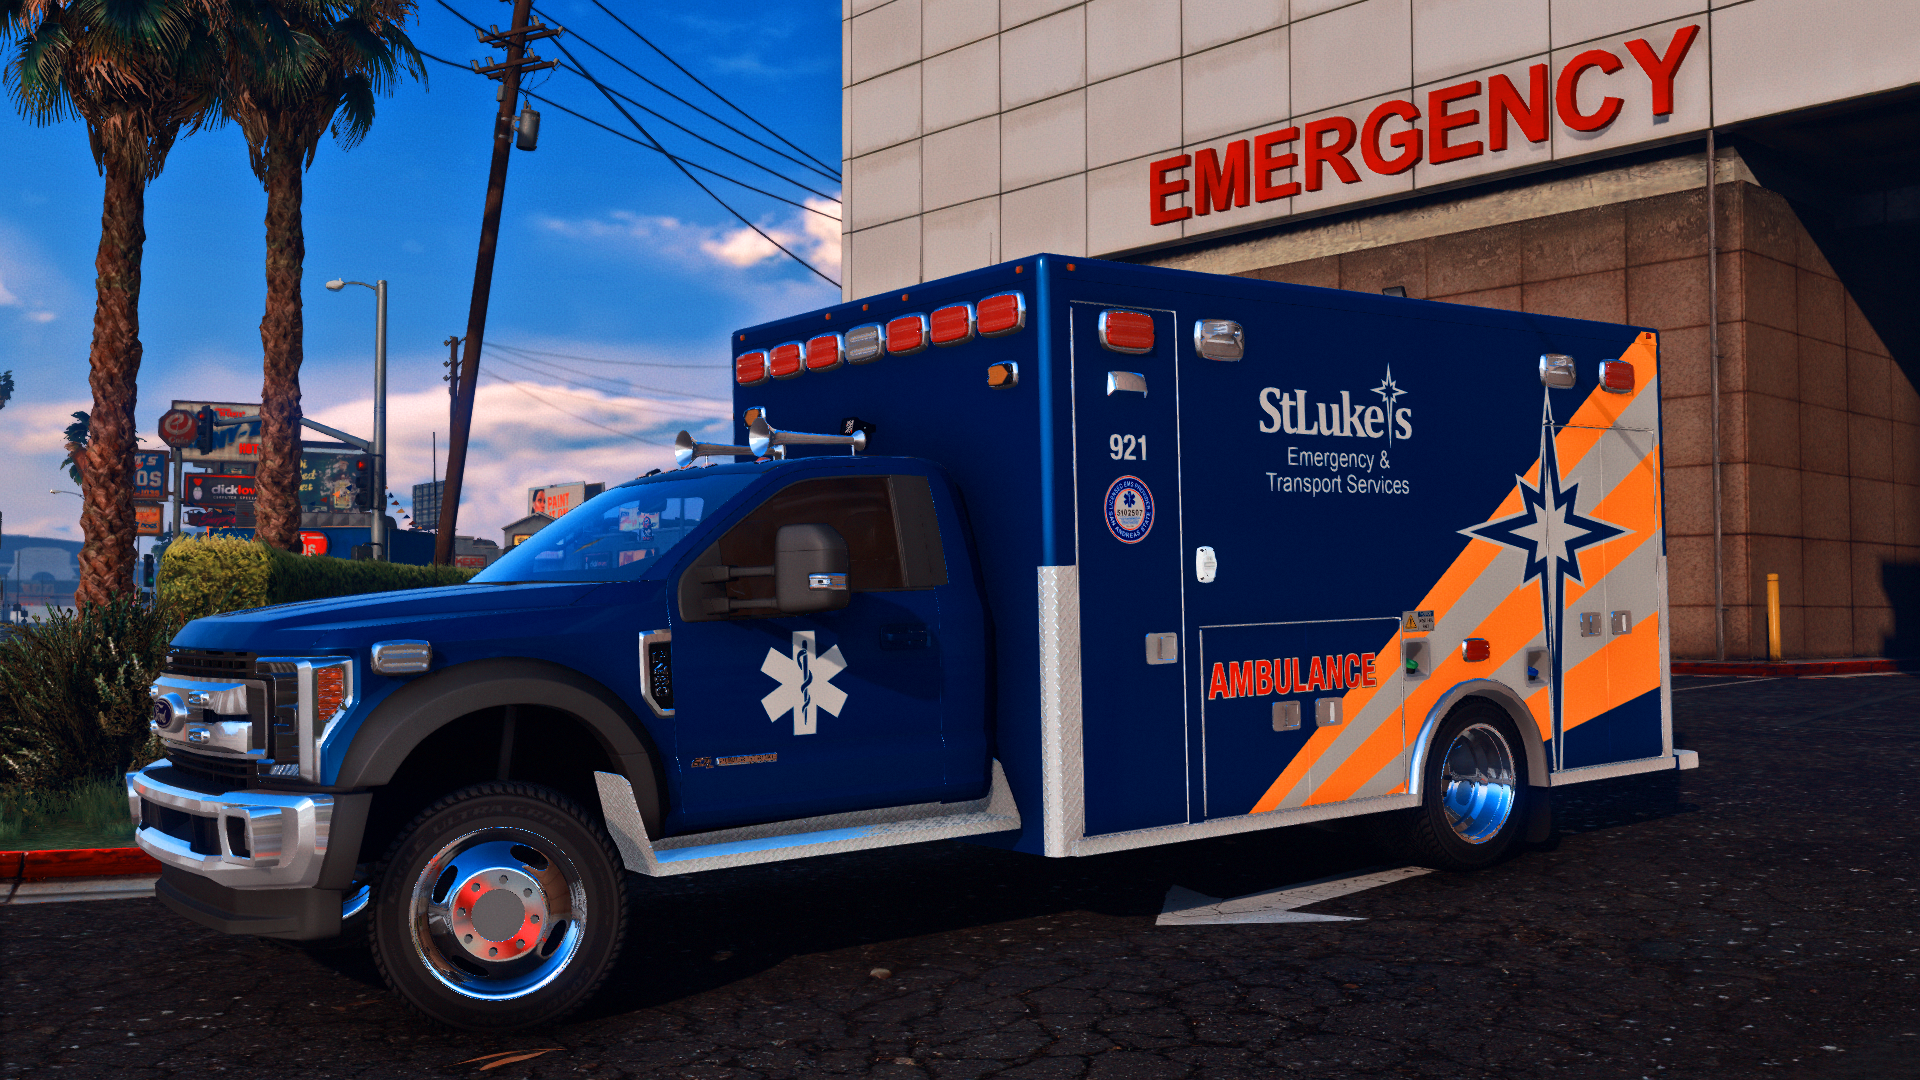 Who doesn't love a blue ambulance?